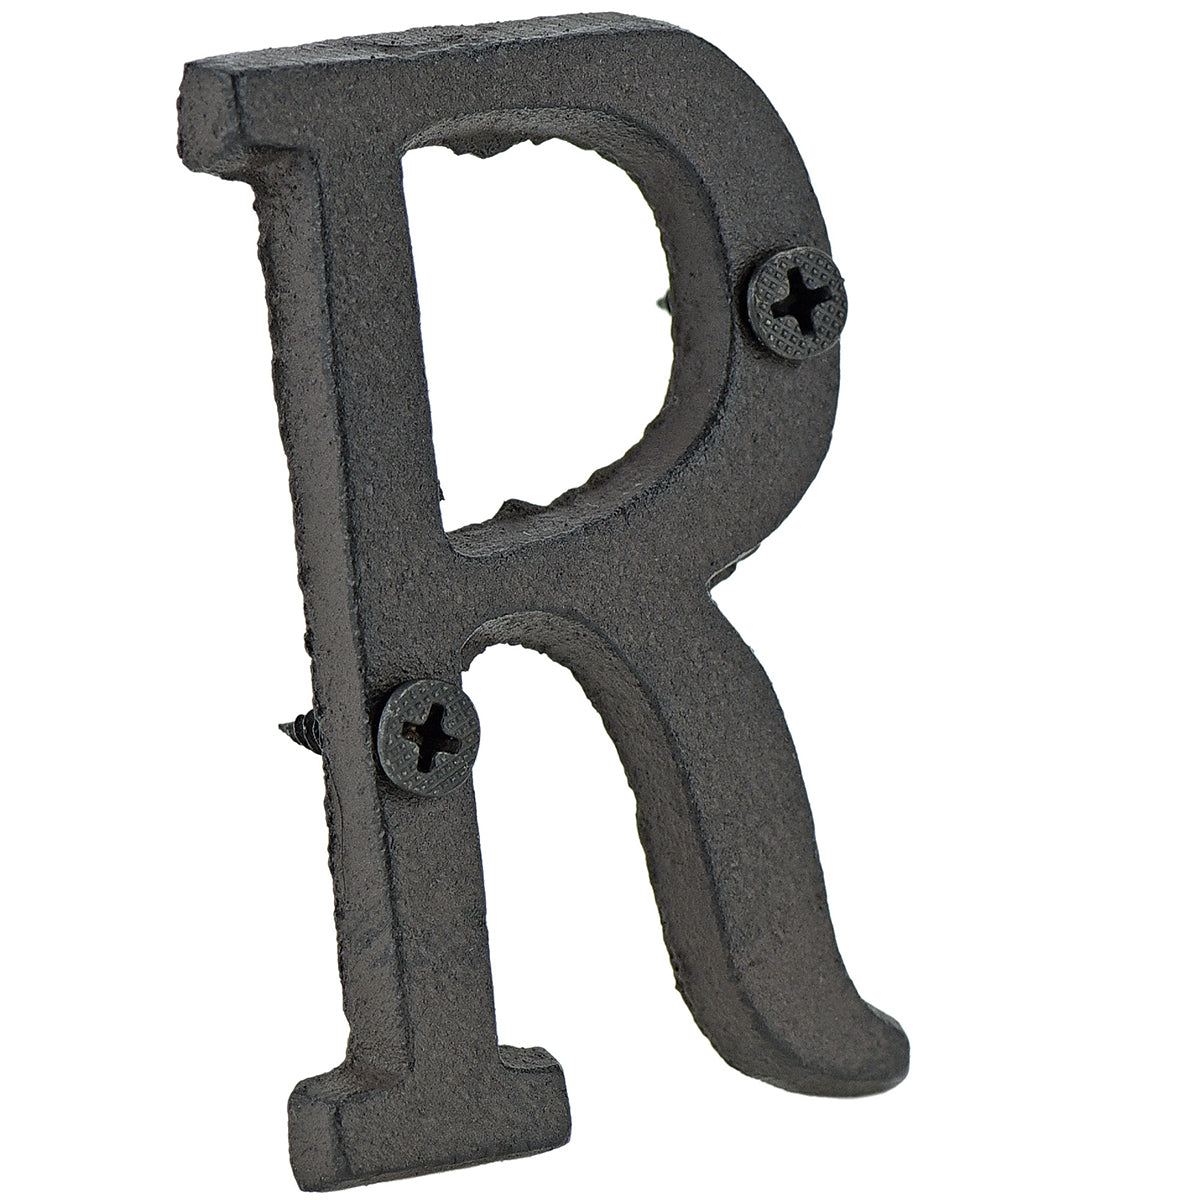 A cast iron house letter sign 'R' with white background